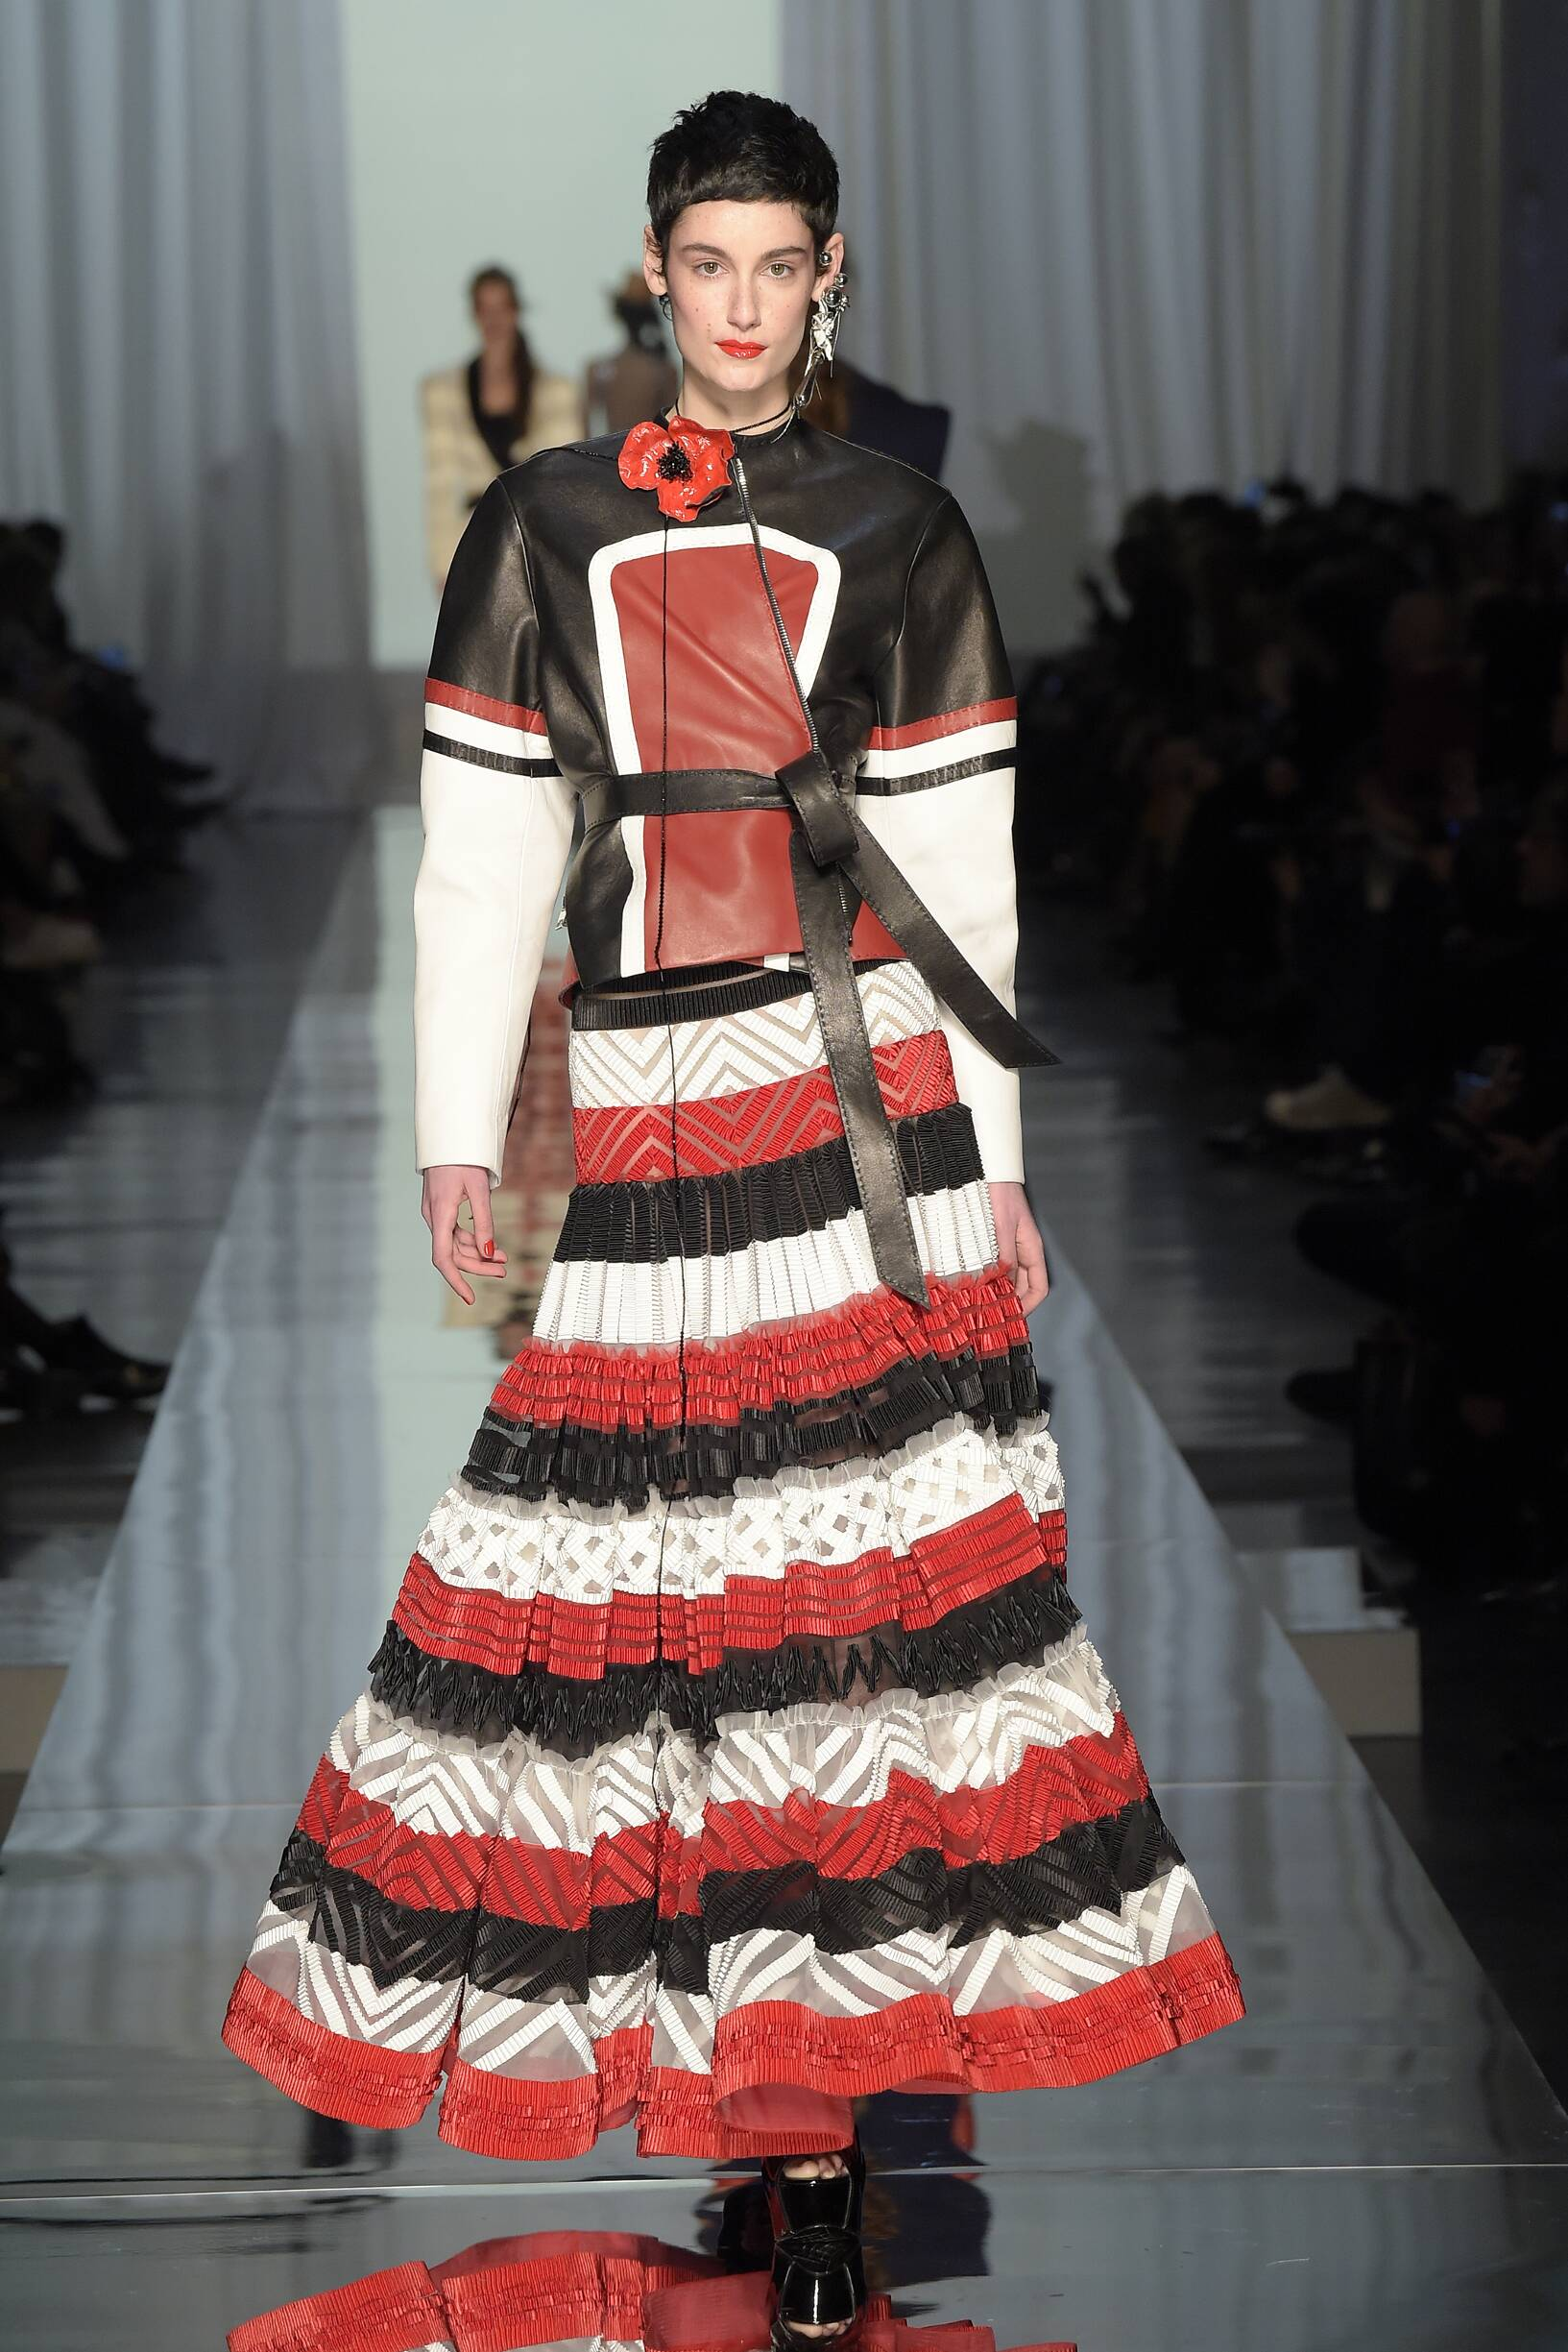 Jean Paul Gaultier Haute Couture Woman Fashion Style